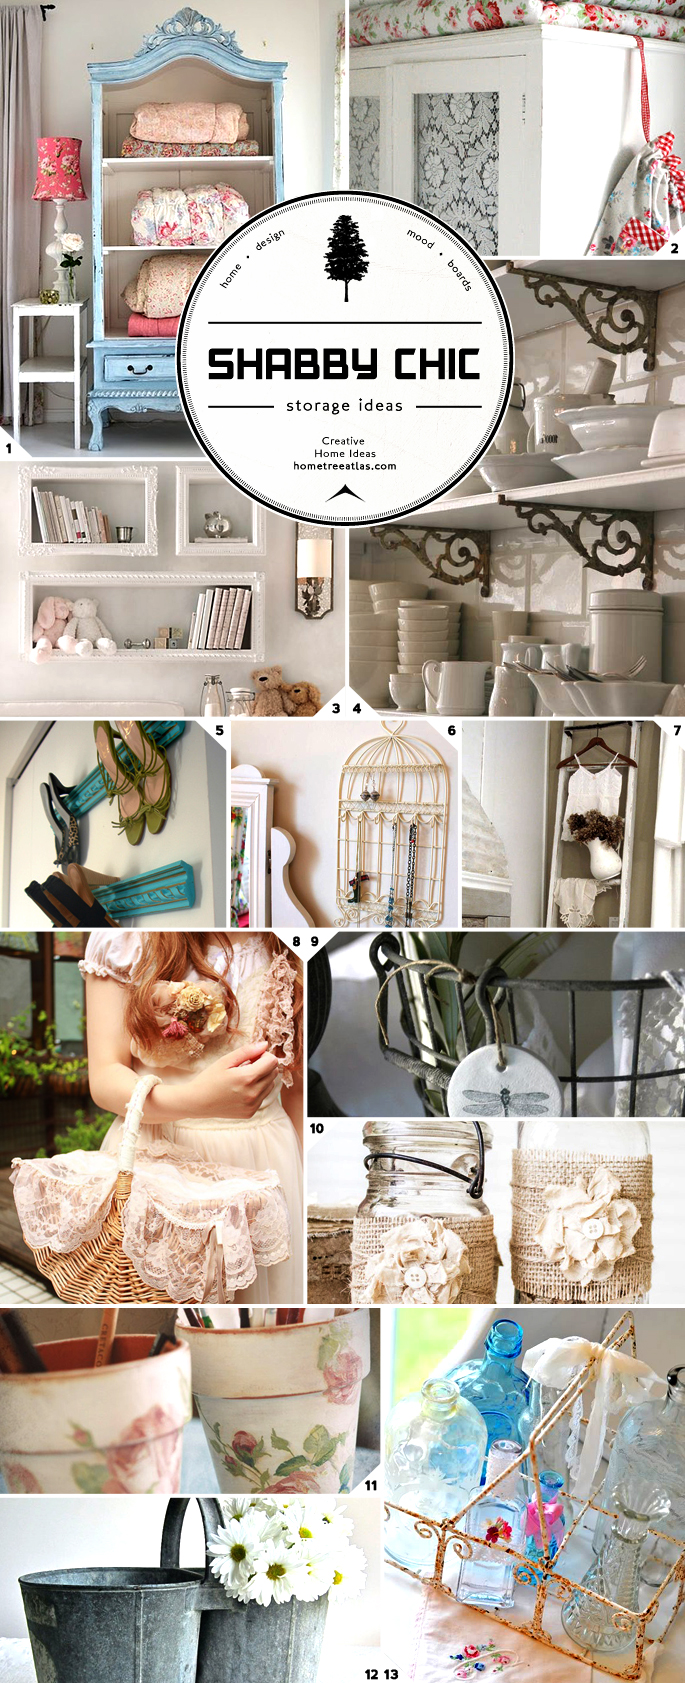 Shabby Chic Storage Ideas